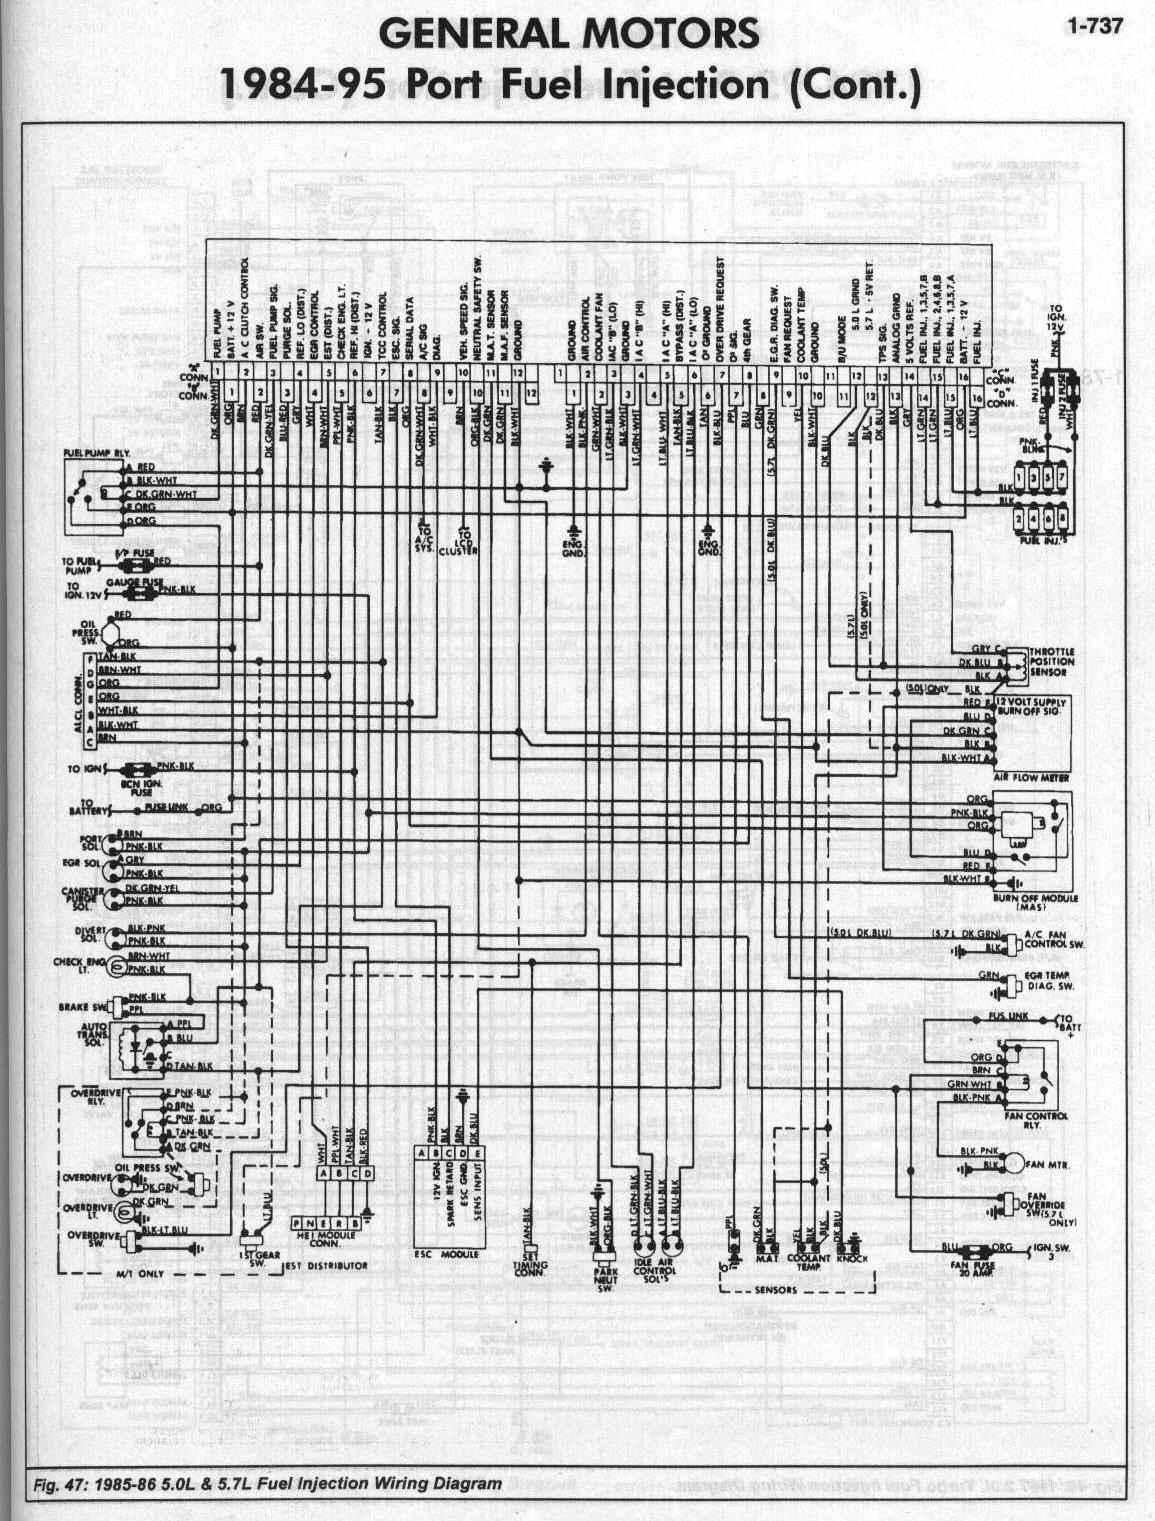 Ac Wiring Diagram For A 1995 Camaro Z28 Library 1984 Pontiac Grand Prix 85 Ecm Maf Mas Copy1 Copy2 86